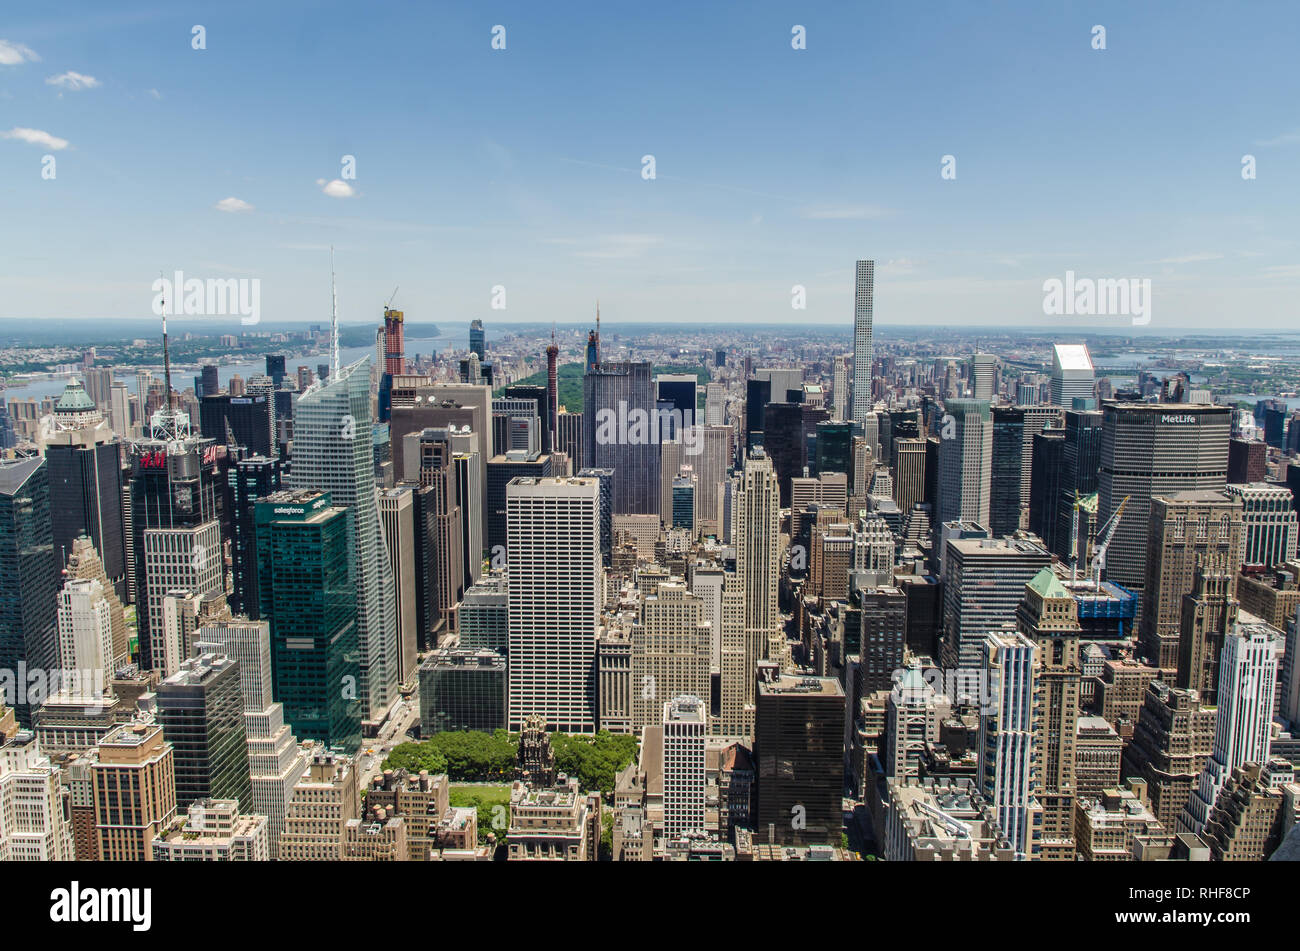 Aerial view of lower Manhattan as seen from the top of Empire state building in New York , USA - Stock Image